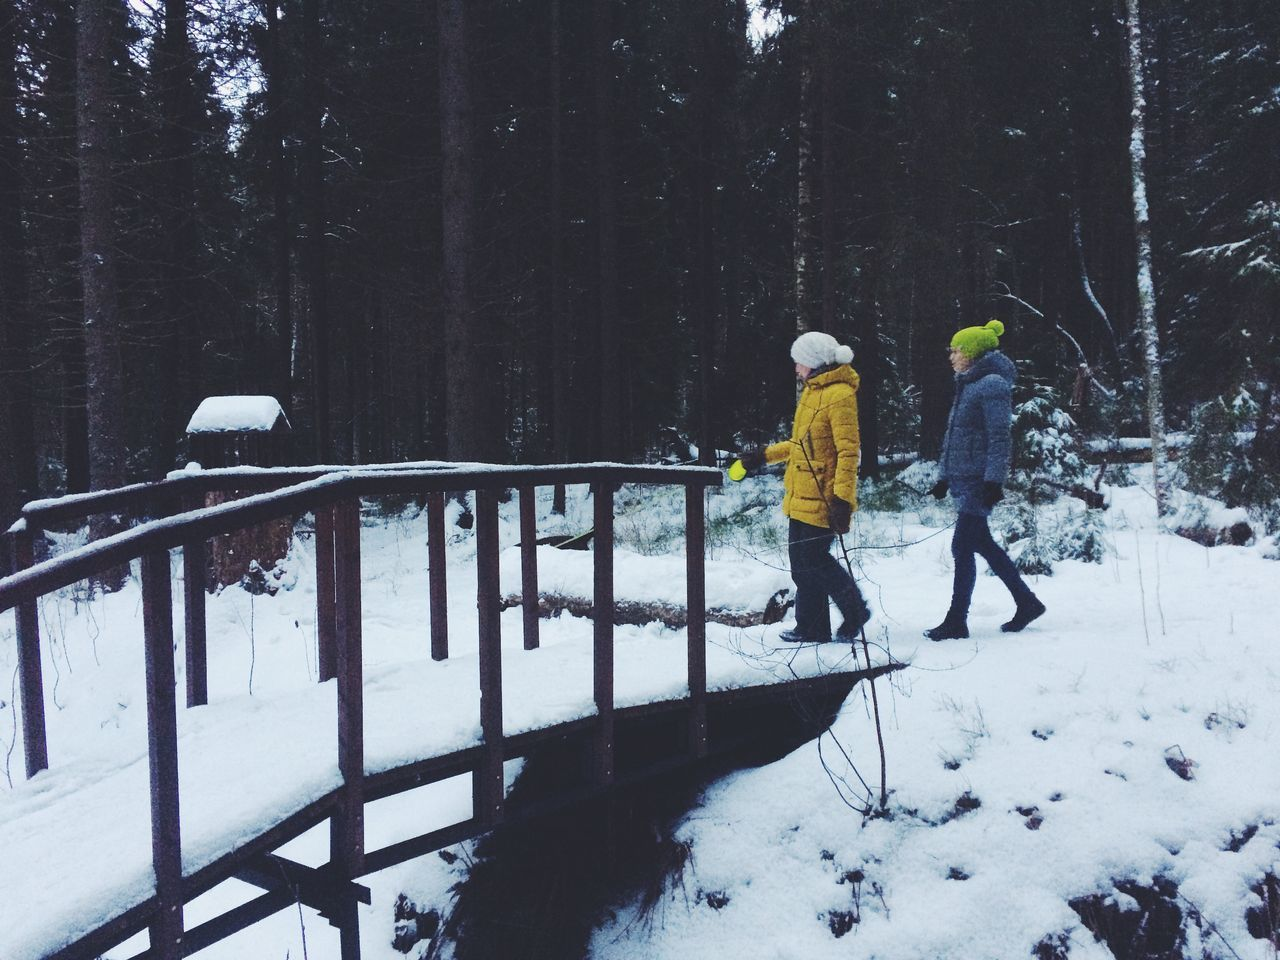 Adult Adults Only Beauty In Nature Cold Temperature Day Forest Headwear Landscape Leisure Activity Men Nature Outdoors People Ski Holiday Snow Snowflake Snowing Togetherness Tree Two People Warm Clothing Weather Winter Young Adult